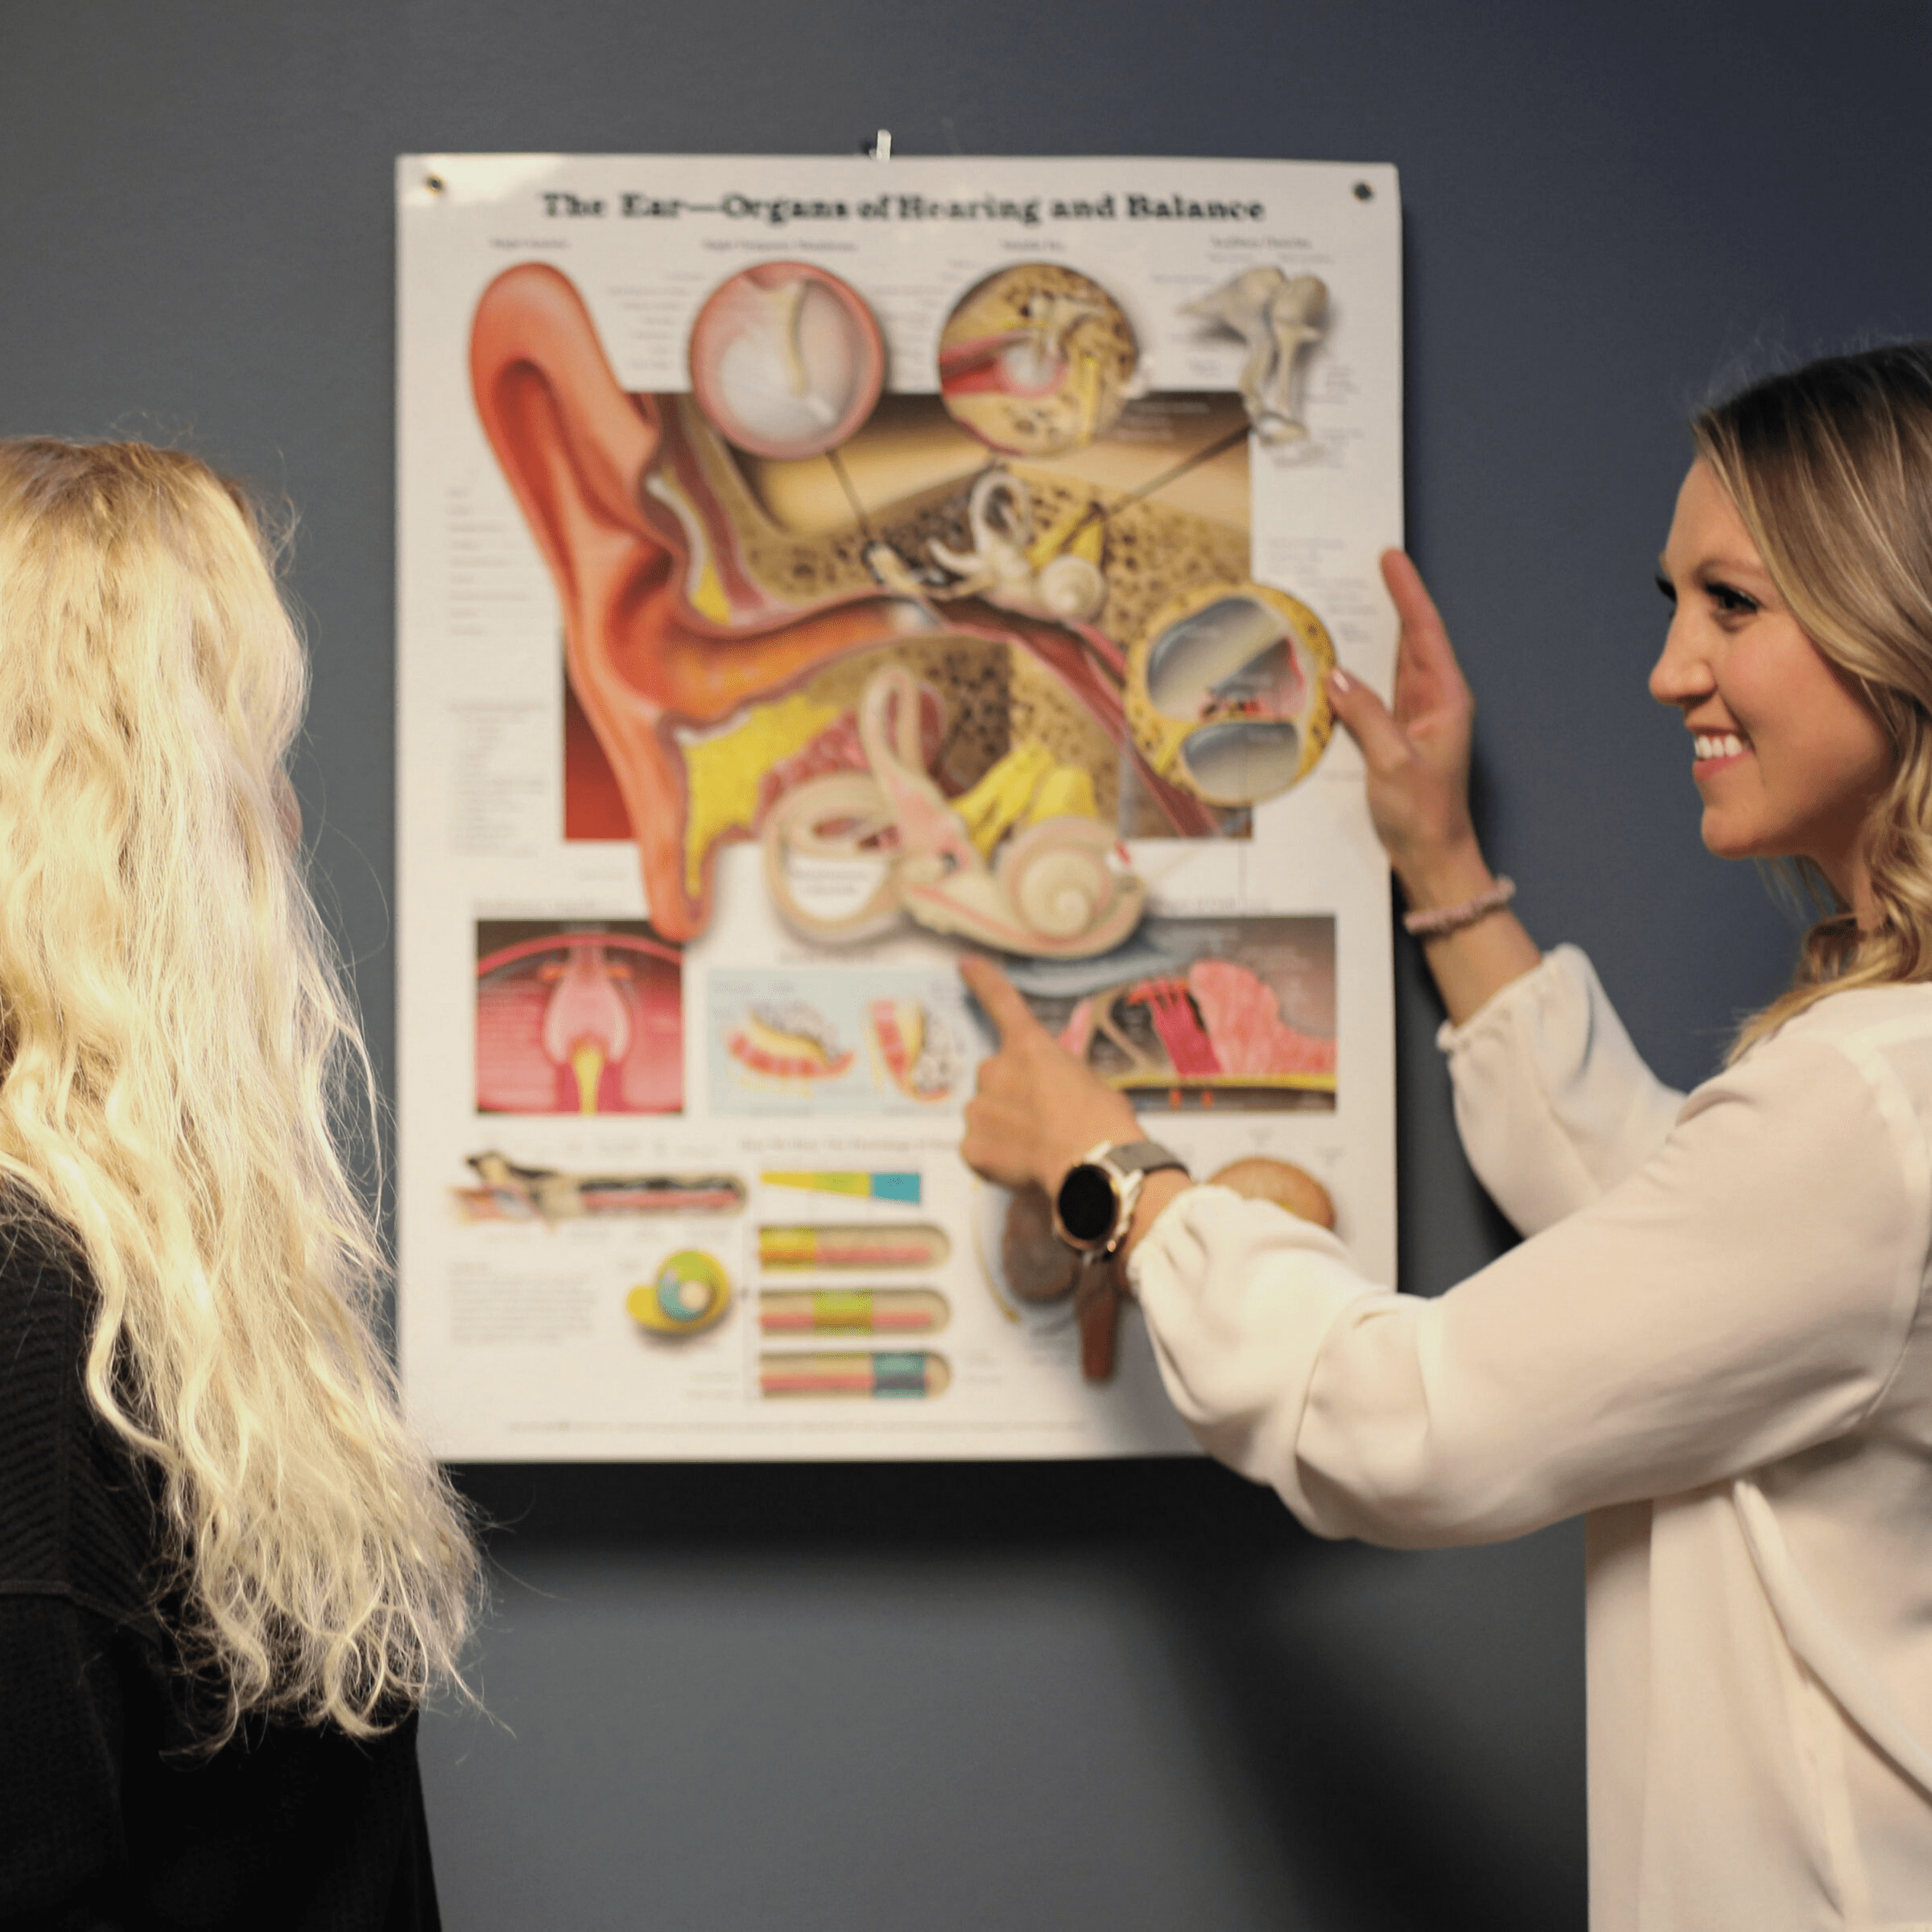 A physical therapist pointing at an anatomy poster.